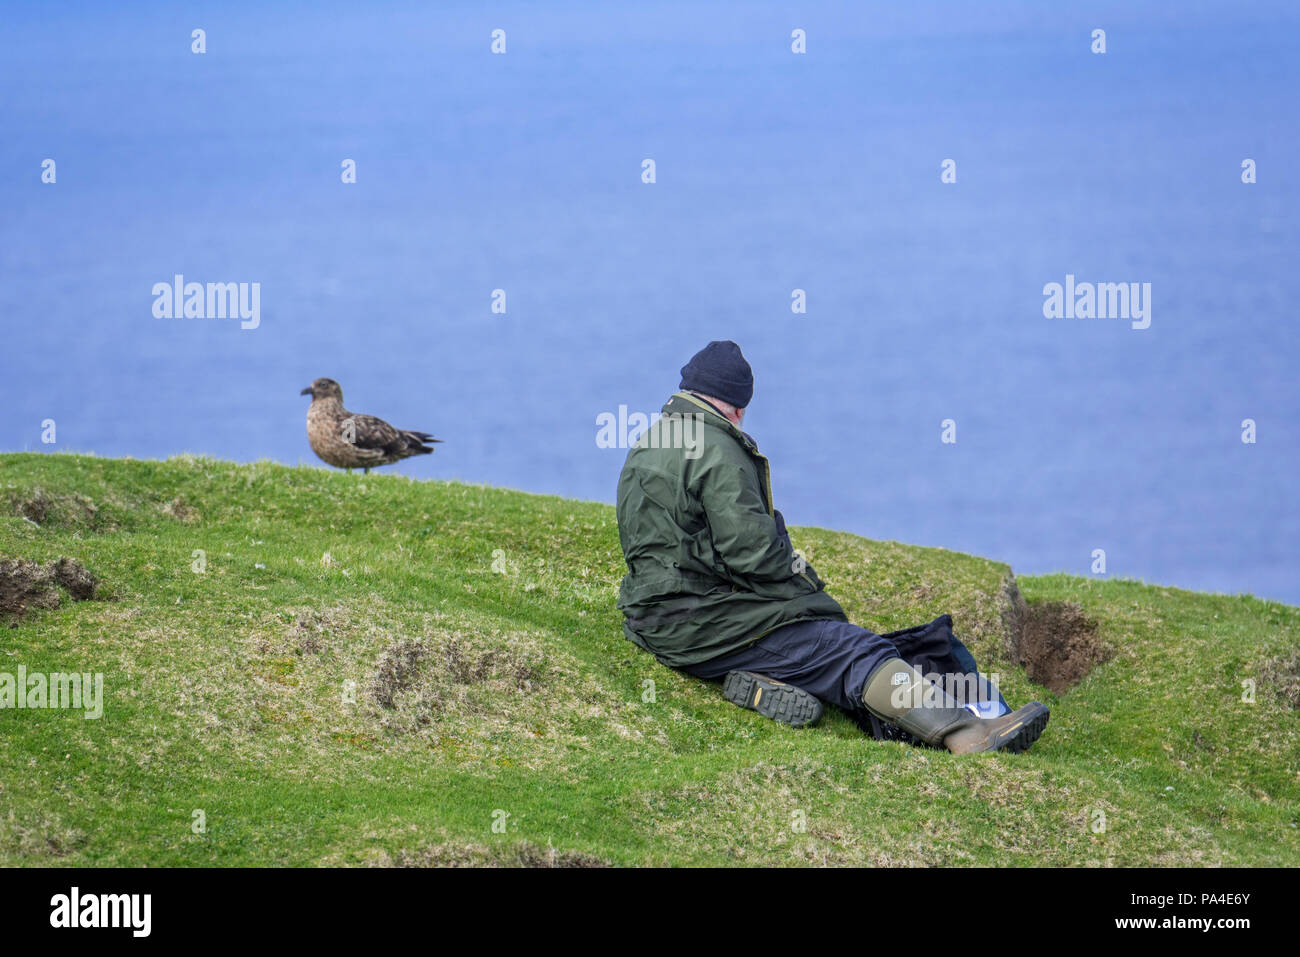 Birder / birdwatcher / bird watcher approaching great skua (Stercorarius skua) very close on clifftop at Hermaness, Unst, Shetland Islands, Scotland - Stock Image